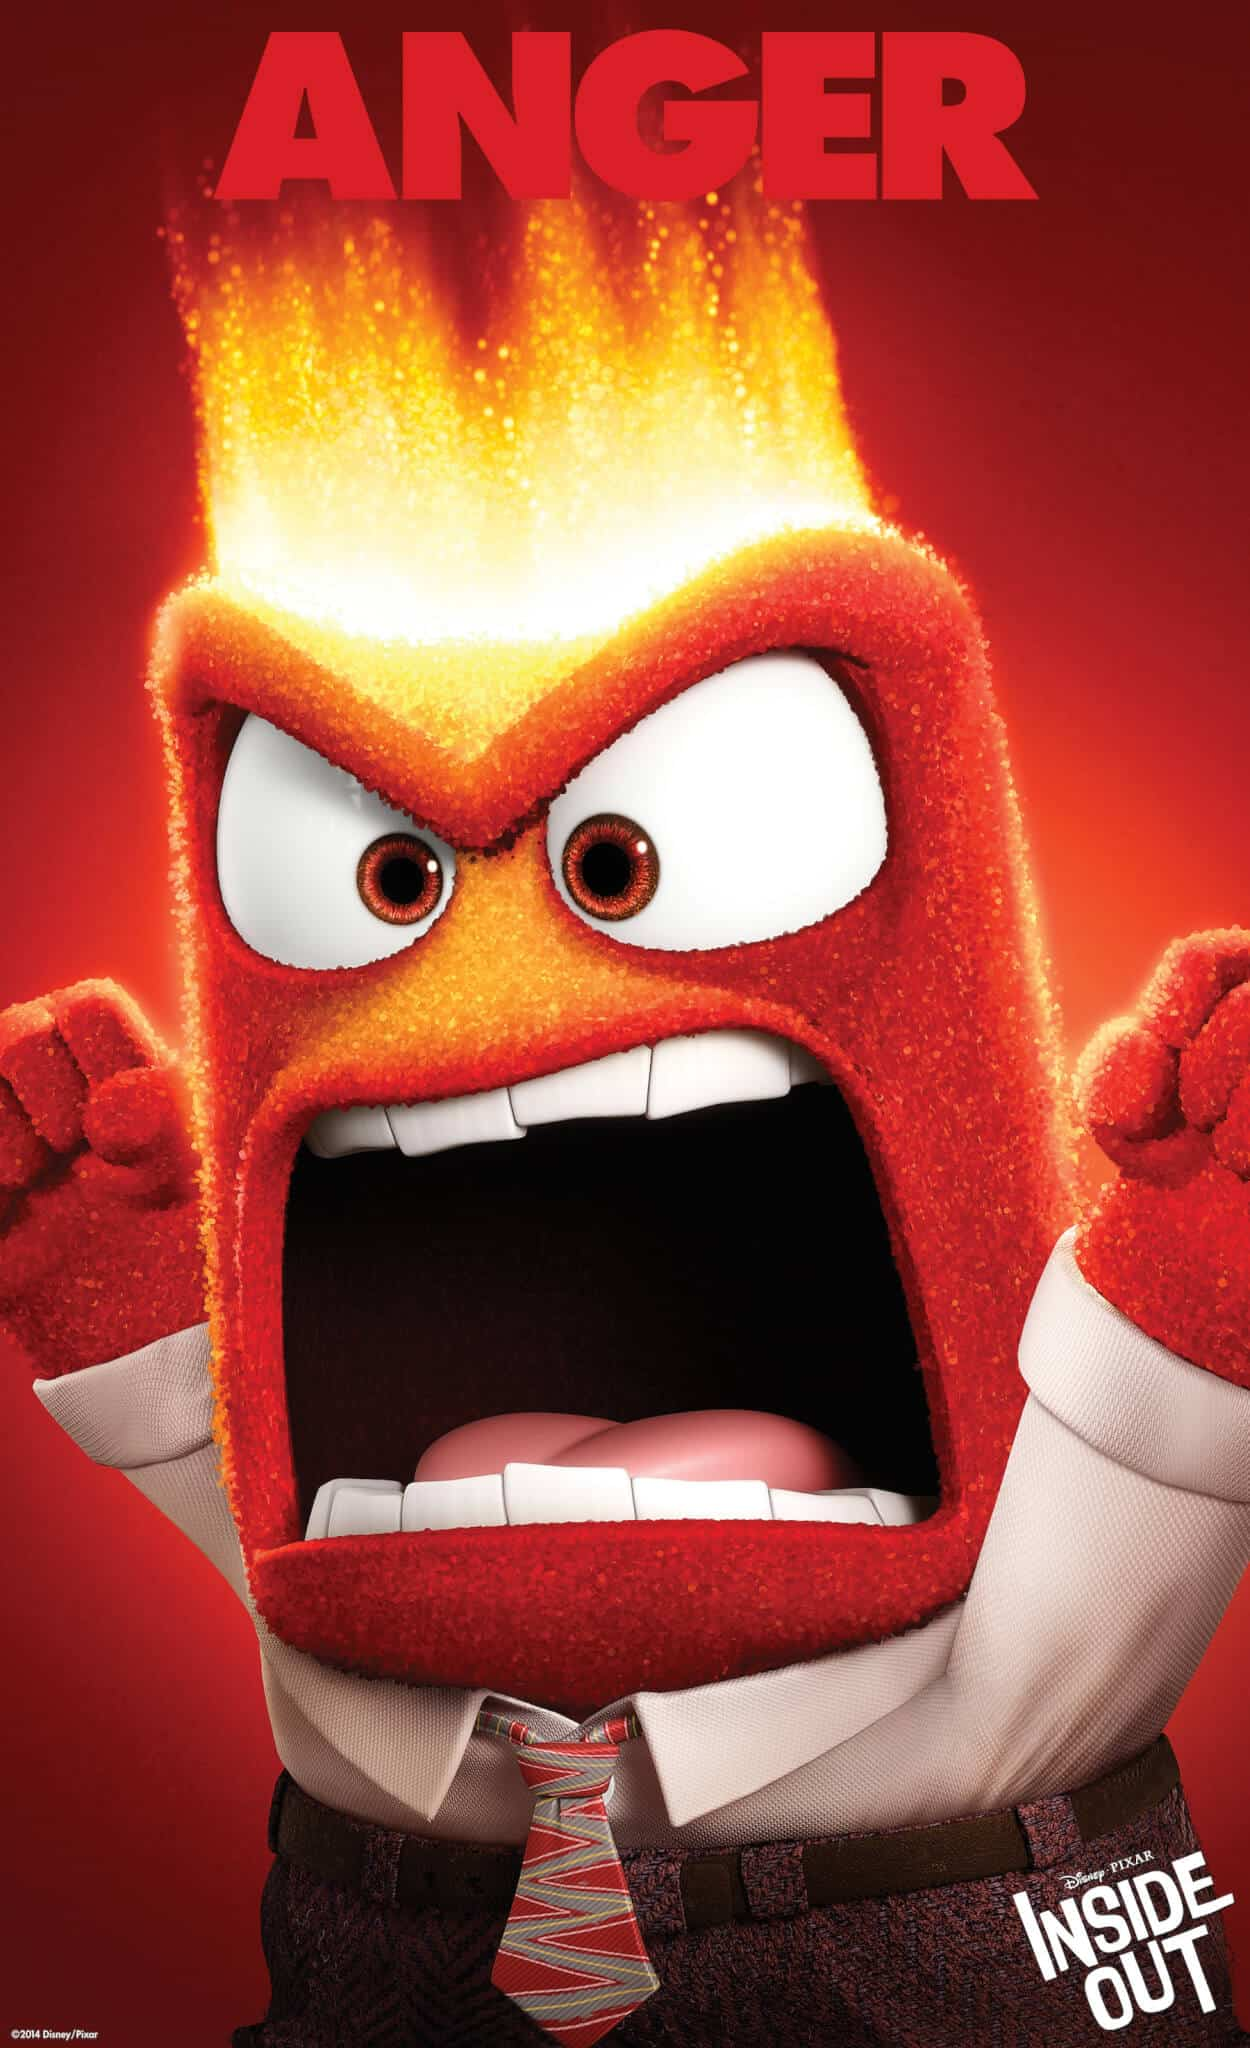 INSIDE OUT - Anger